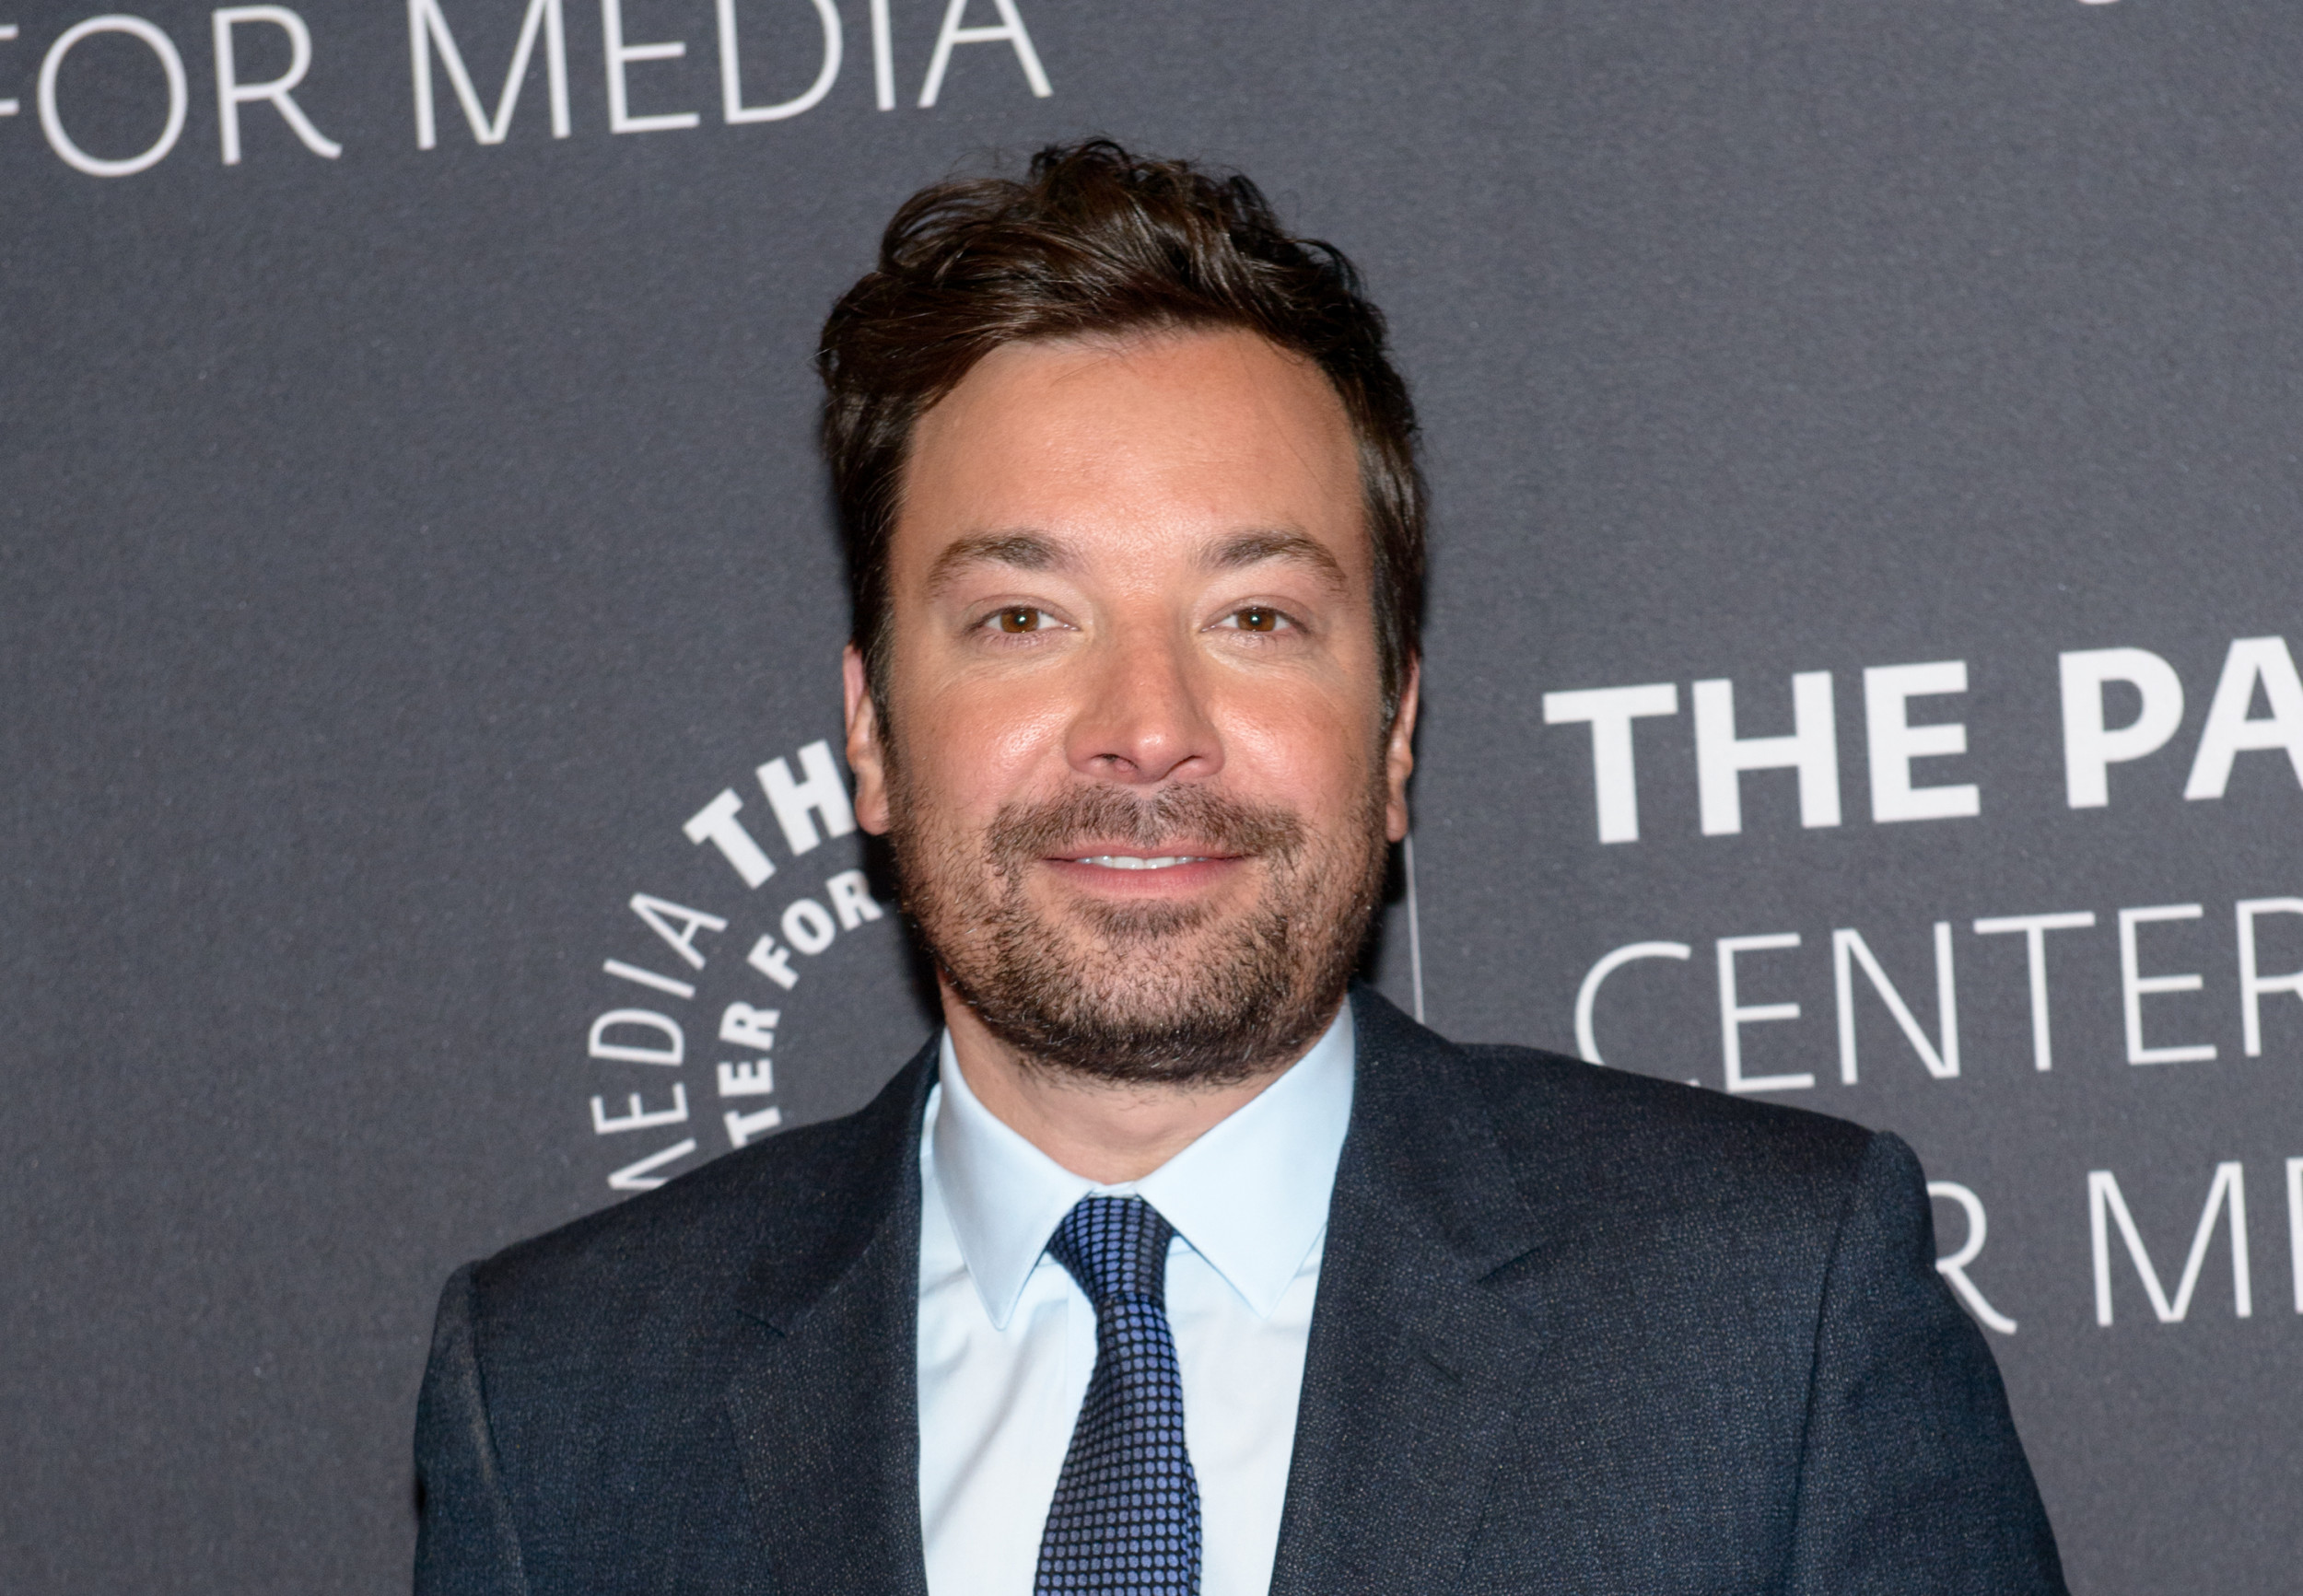 Jimmy Fallon Mocks Sidney Powell's Firing From Trump's Correct Team For 'Being Too Crazy'